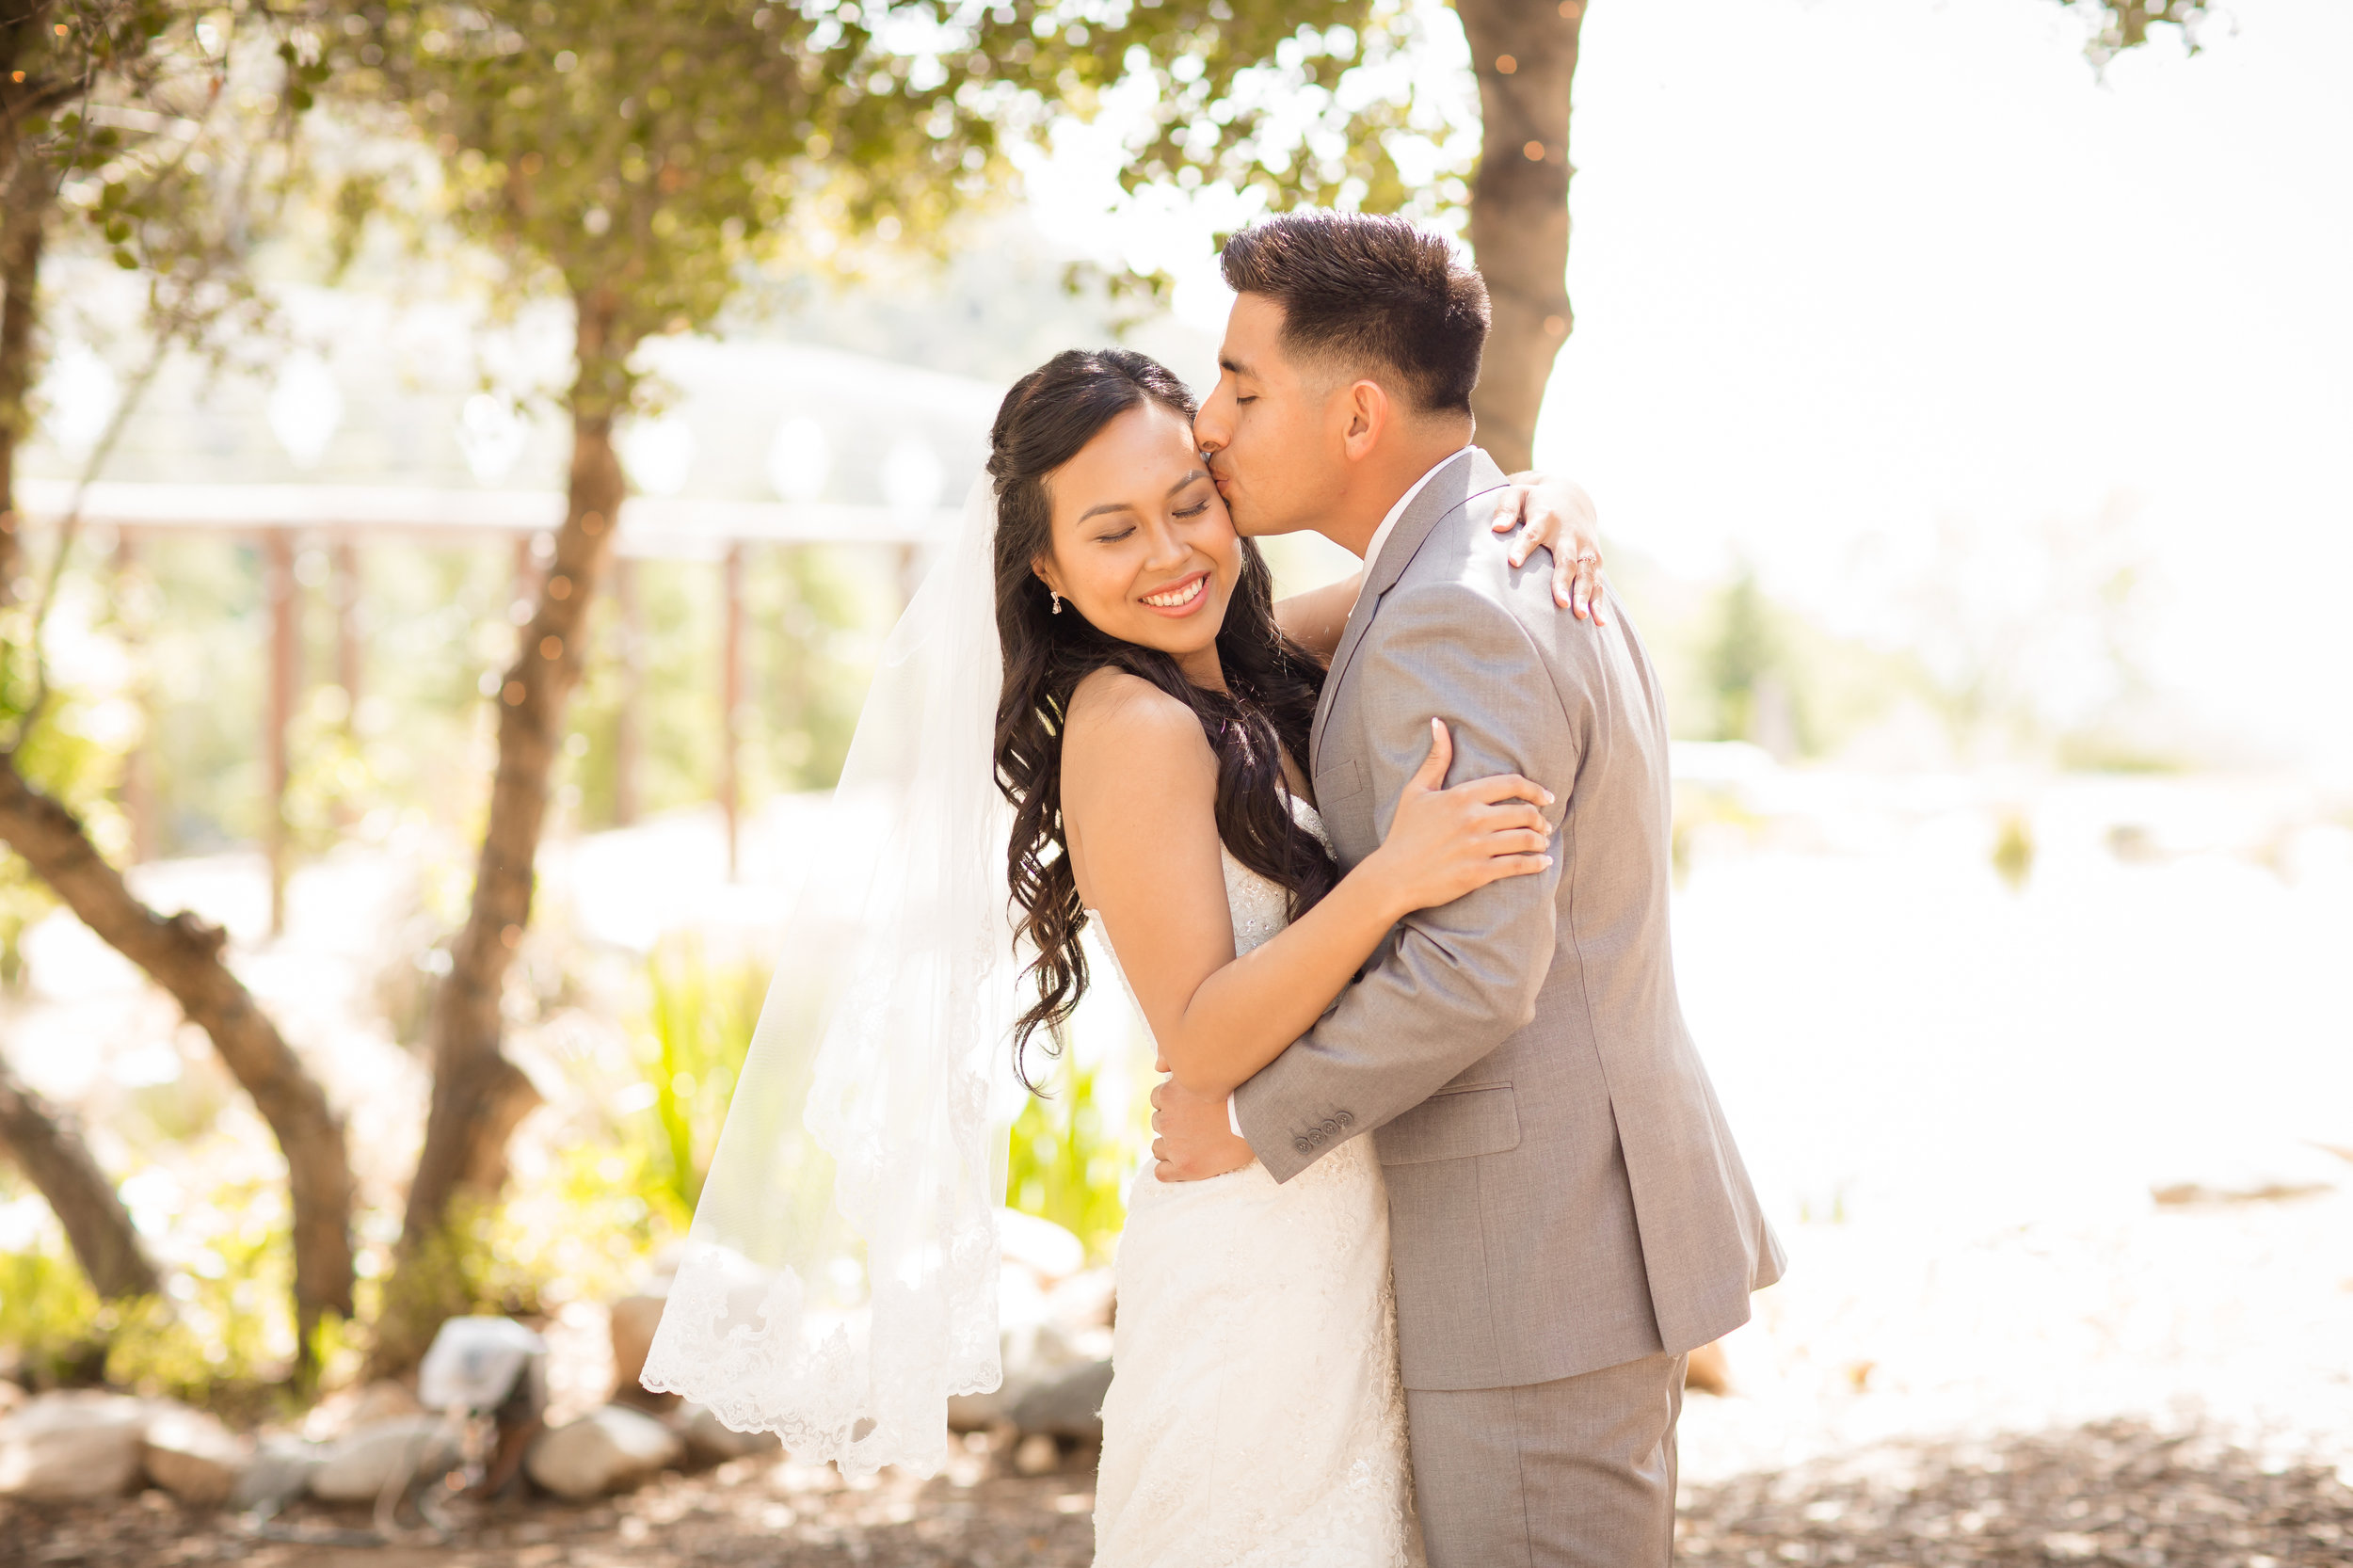 SoutherCalifornia-WeddingPhotographer-Theresabridgetphotography-9.jpg